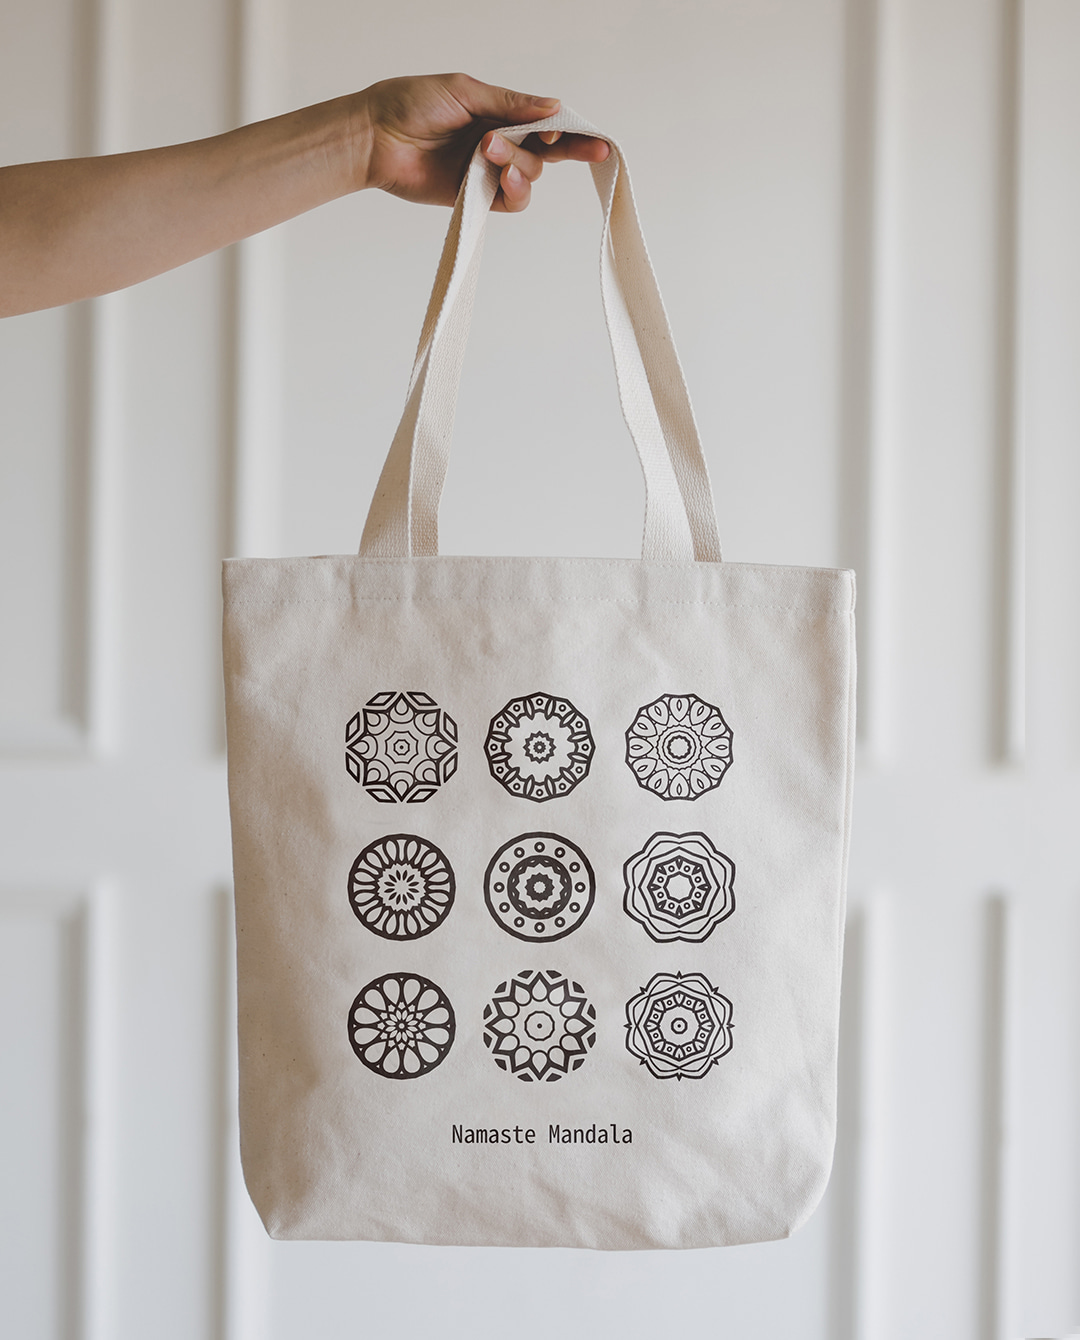 Namaste Mandala Eco bag